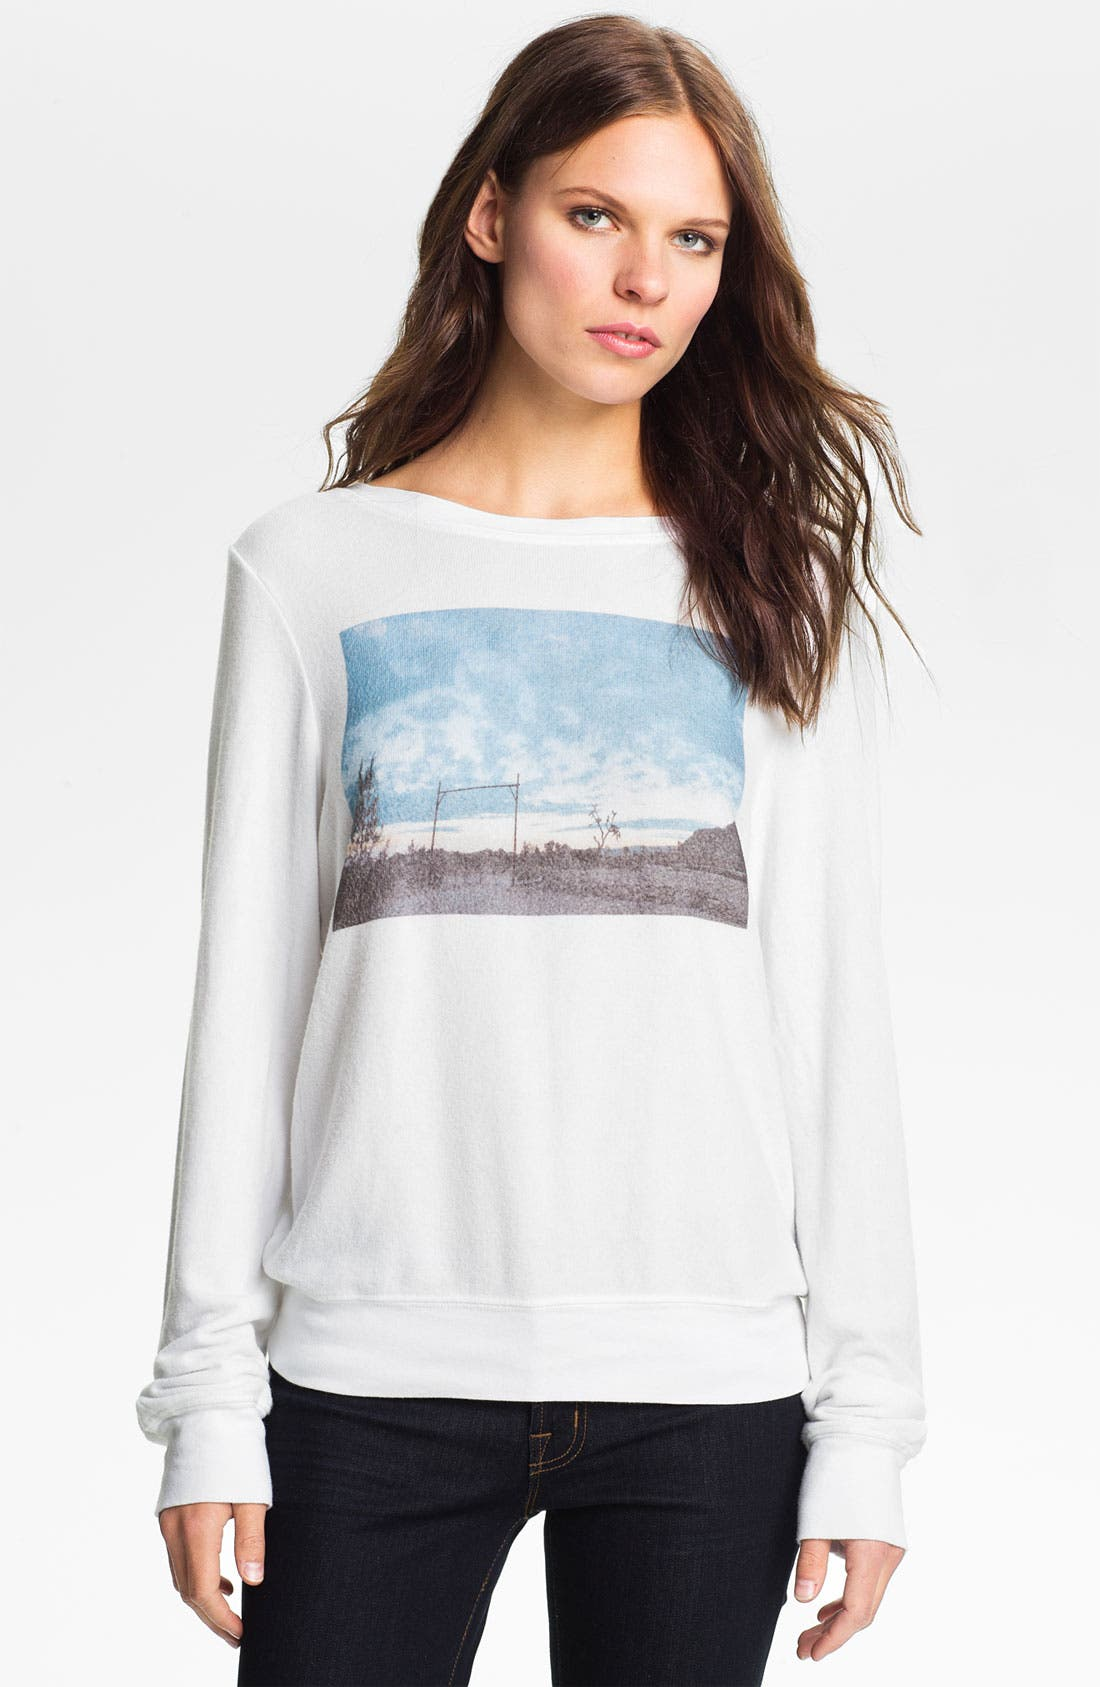 Main Image - Wildfox 'Camp Nowhere' Graphic Sweatshirt